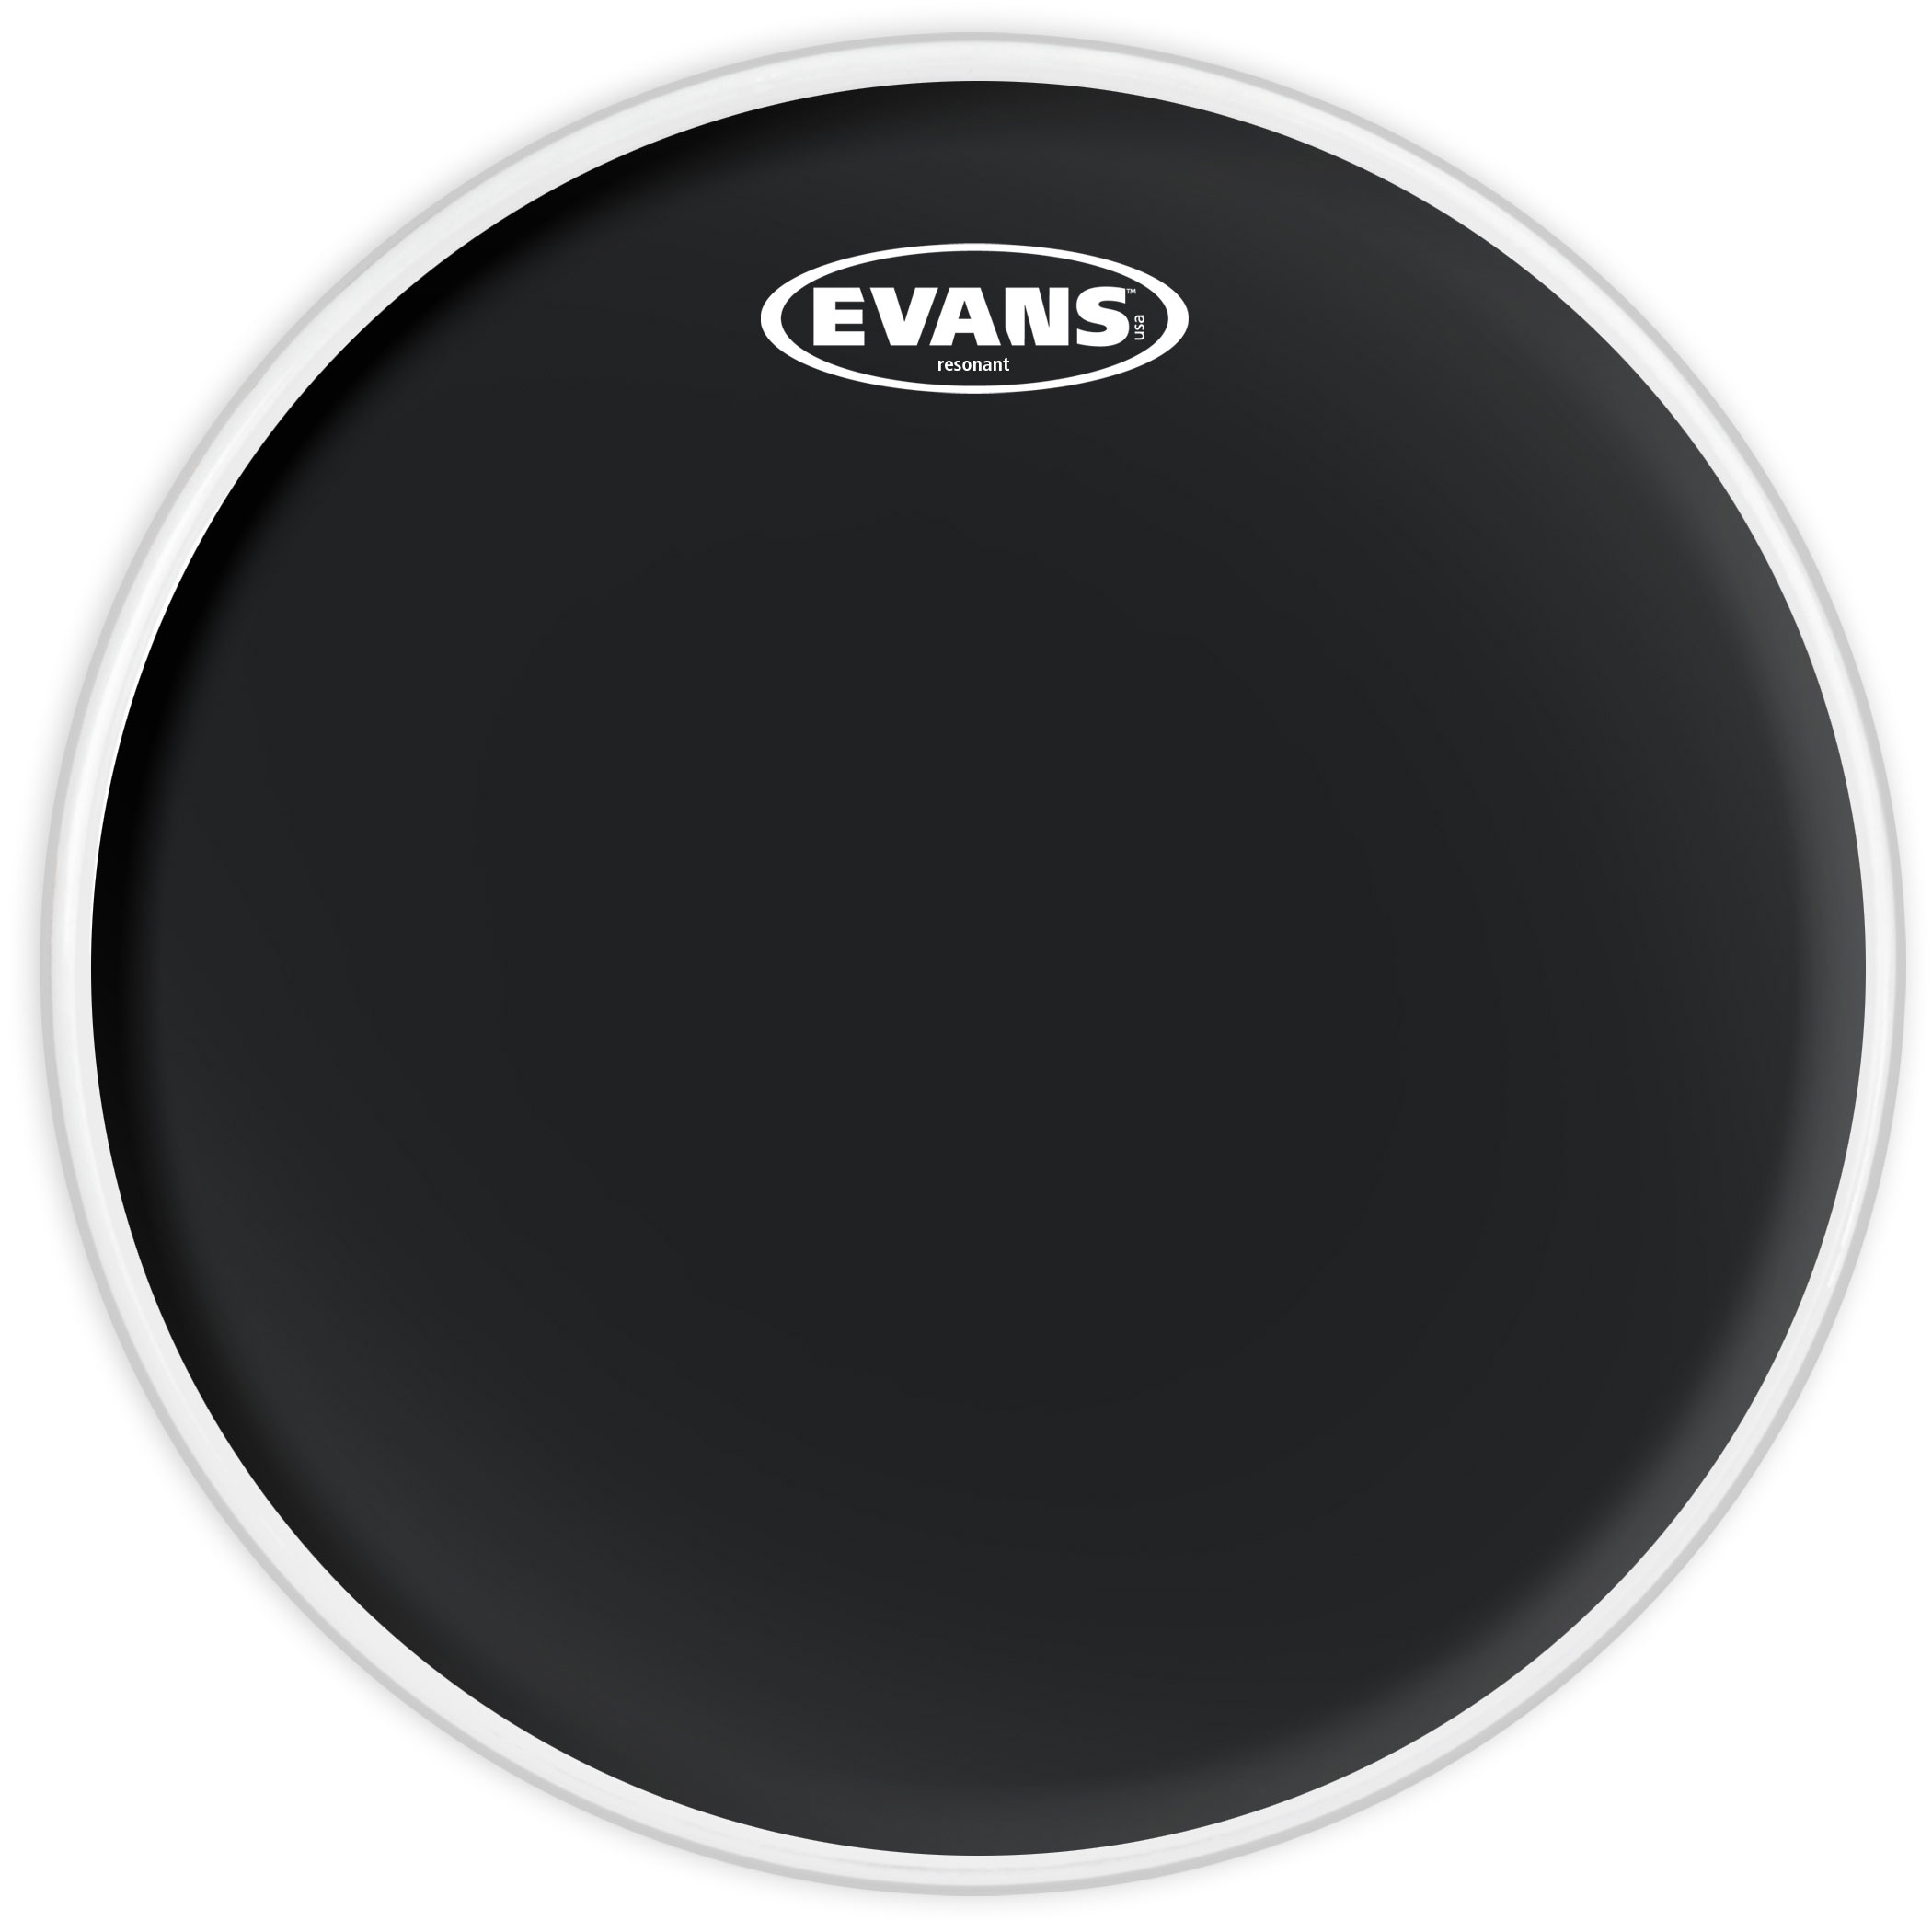 "Evans 14"" Resonant Black Head"